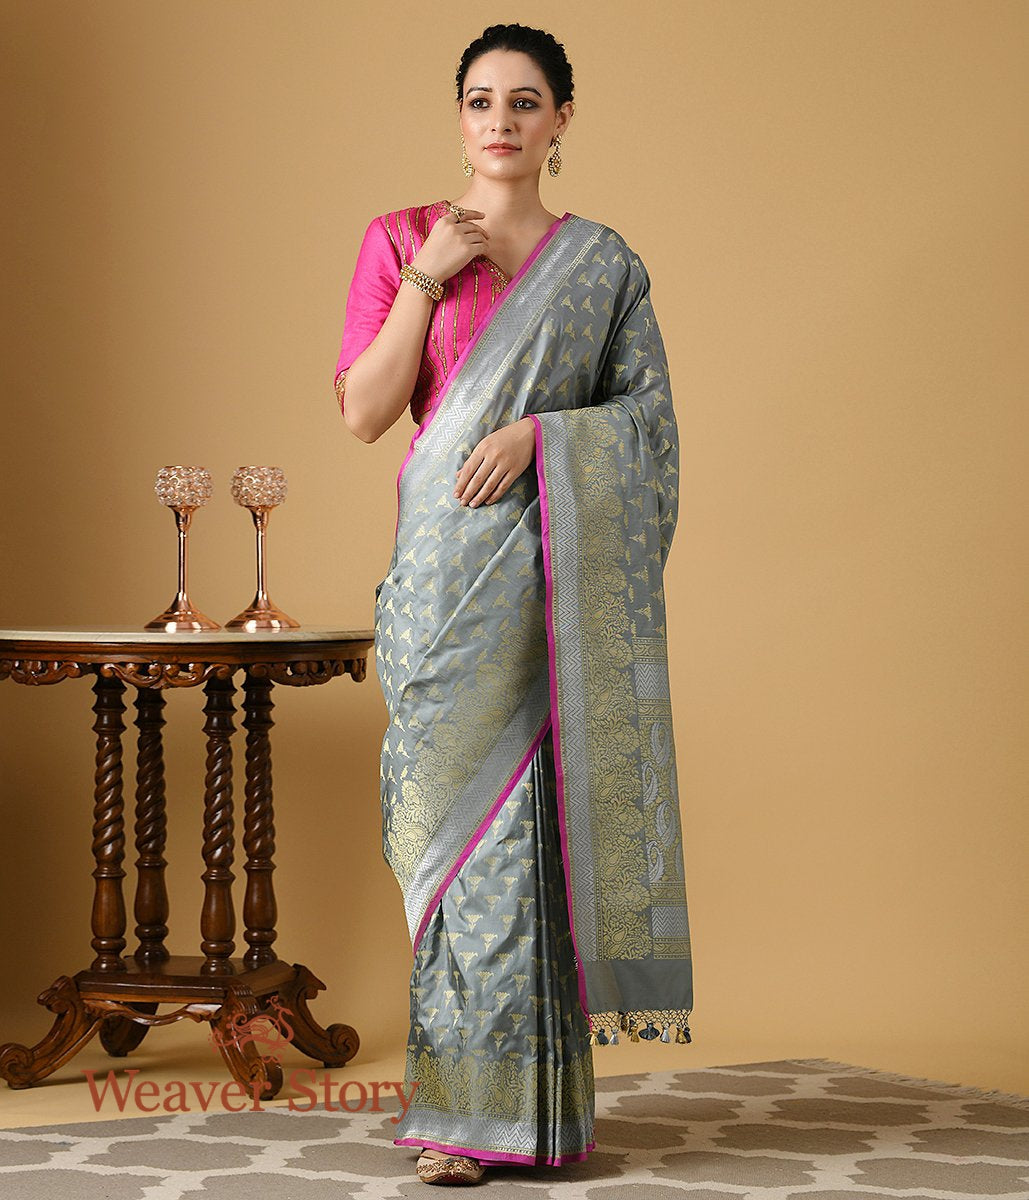 Handwoven Katan Silk Banarasi in Grey with Pink Selvedge